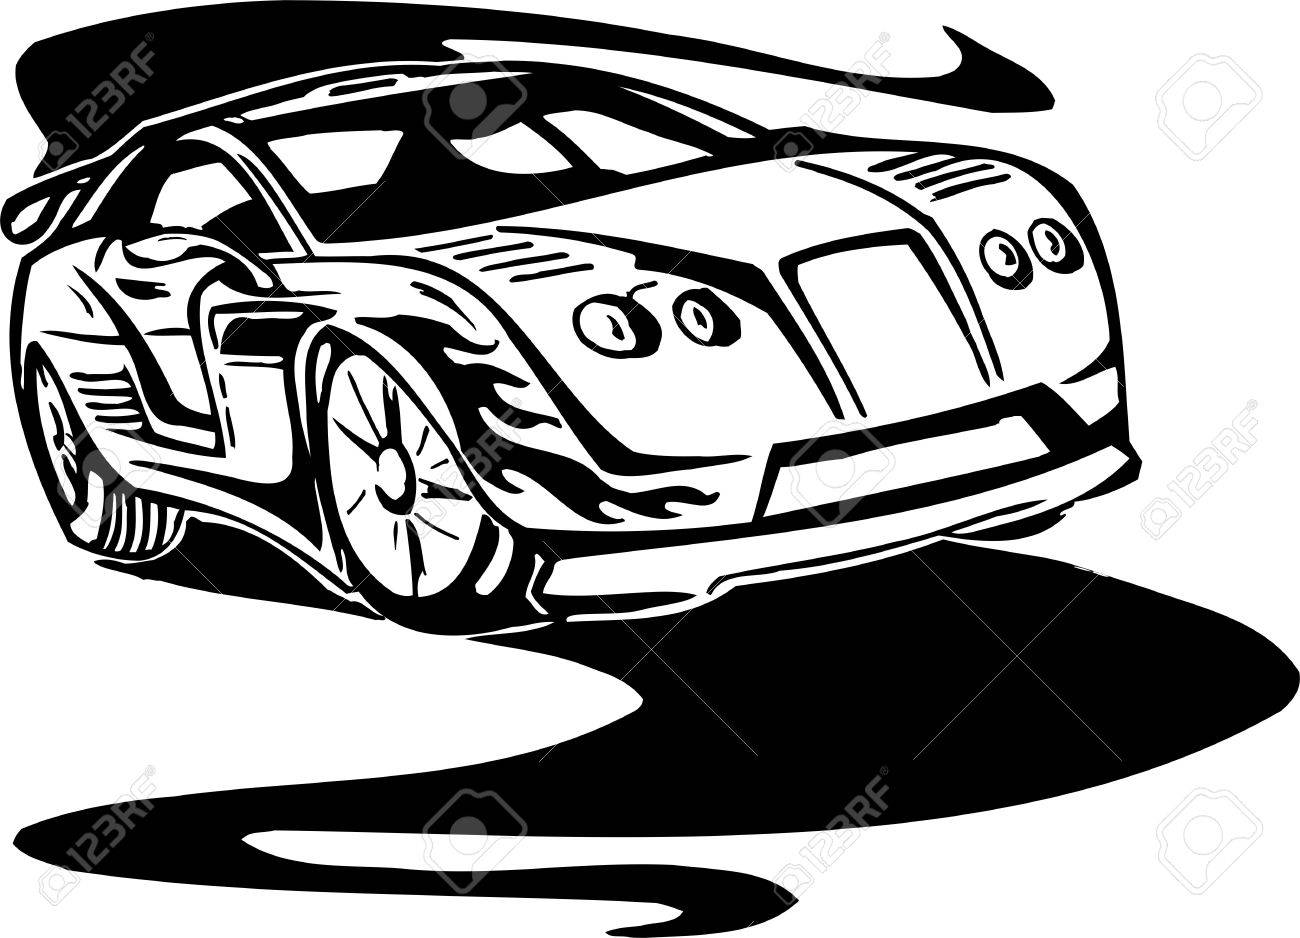 Street Racing Cars. illustration ready for vinyl cutting. Stock Vector - 8682422